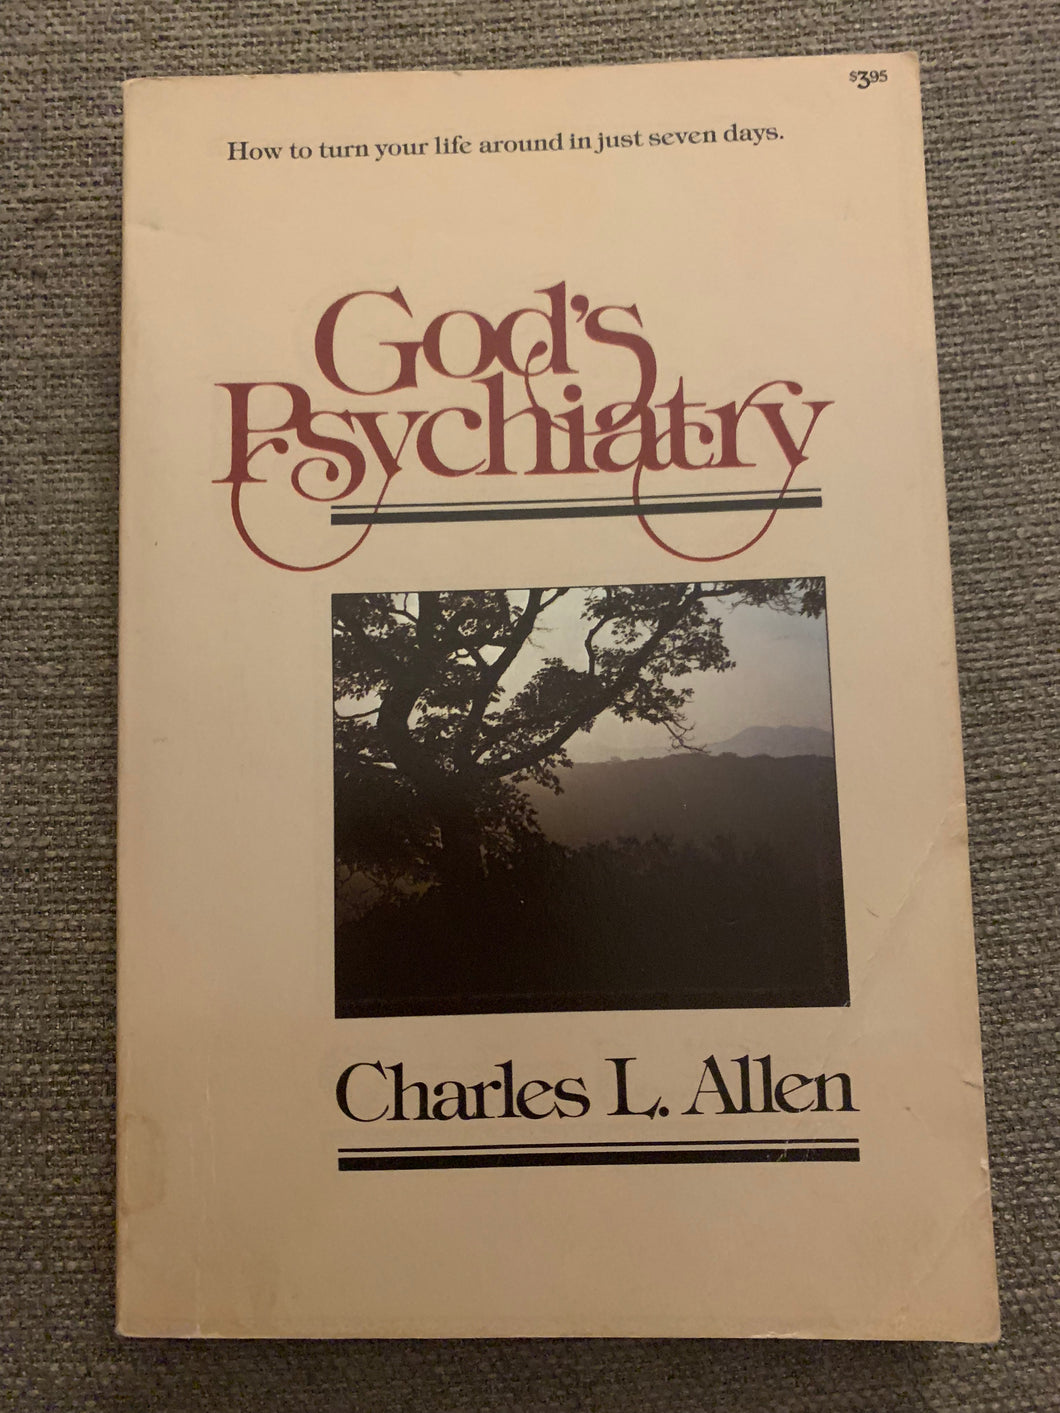 God's Psychiatry by Charles L. Allen